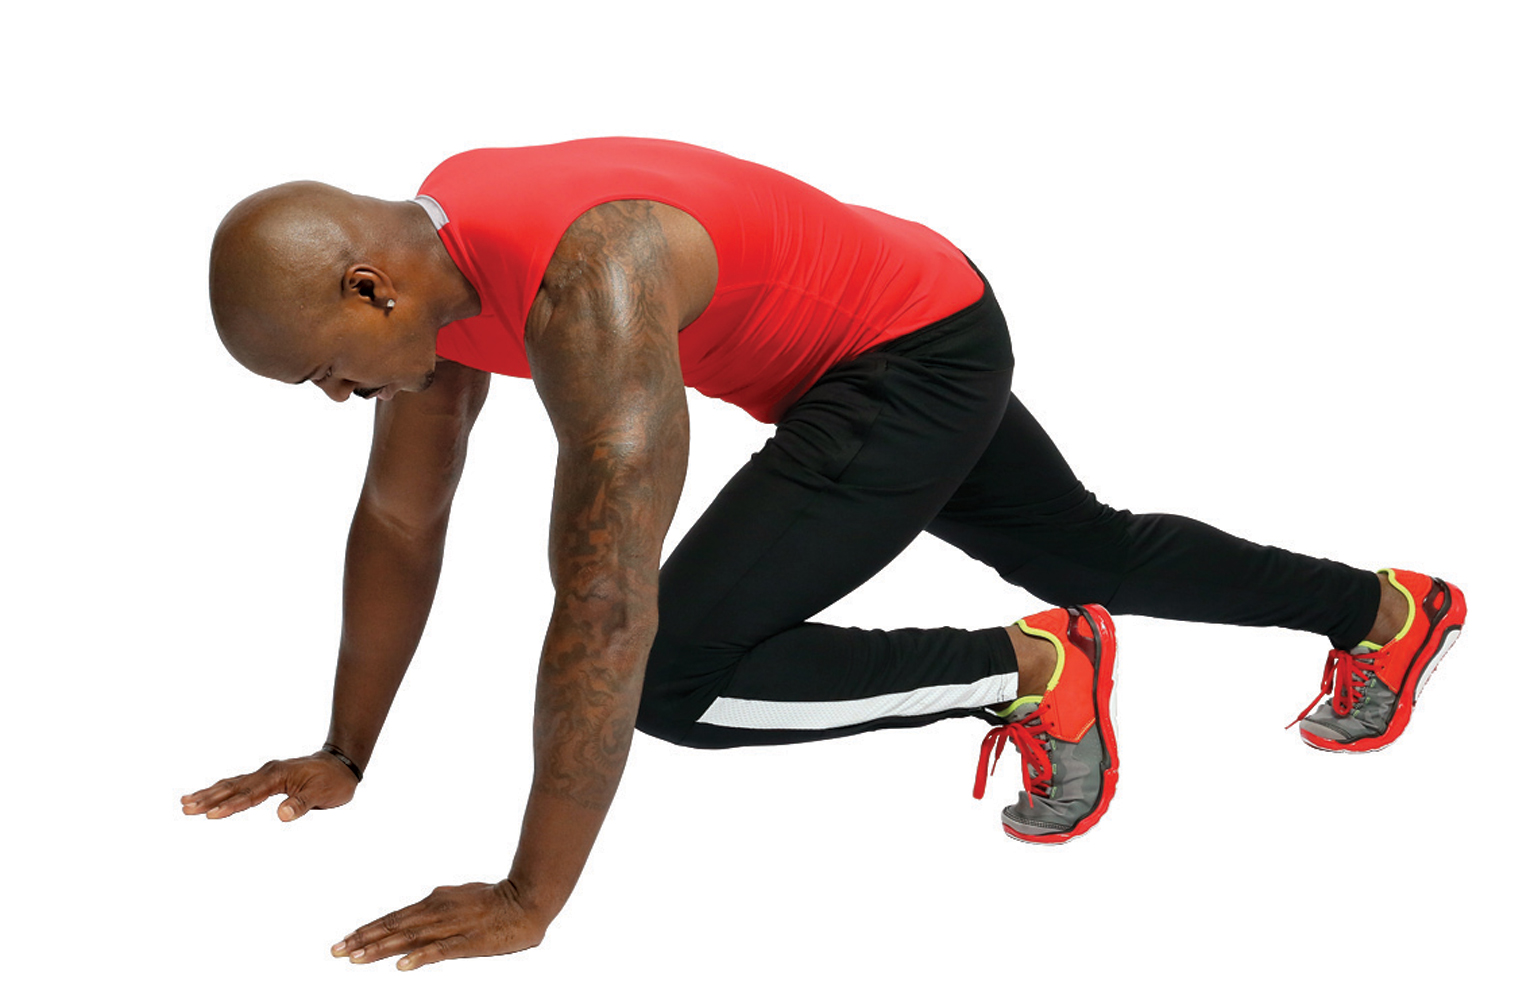 9. Mountain Climbers (30 seconds)                                      Then repeat No. 6, No.4 and then do the entire workout again for Round 2.